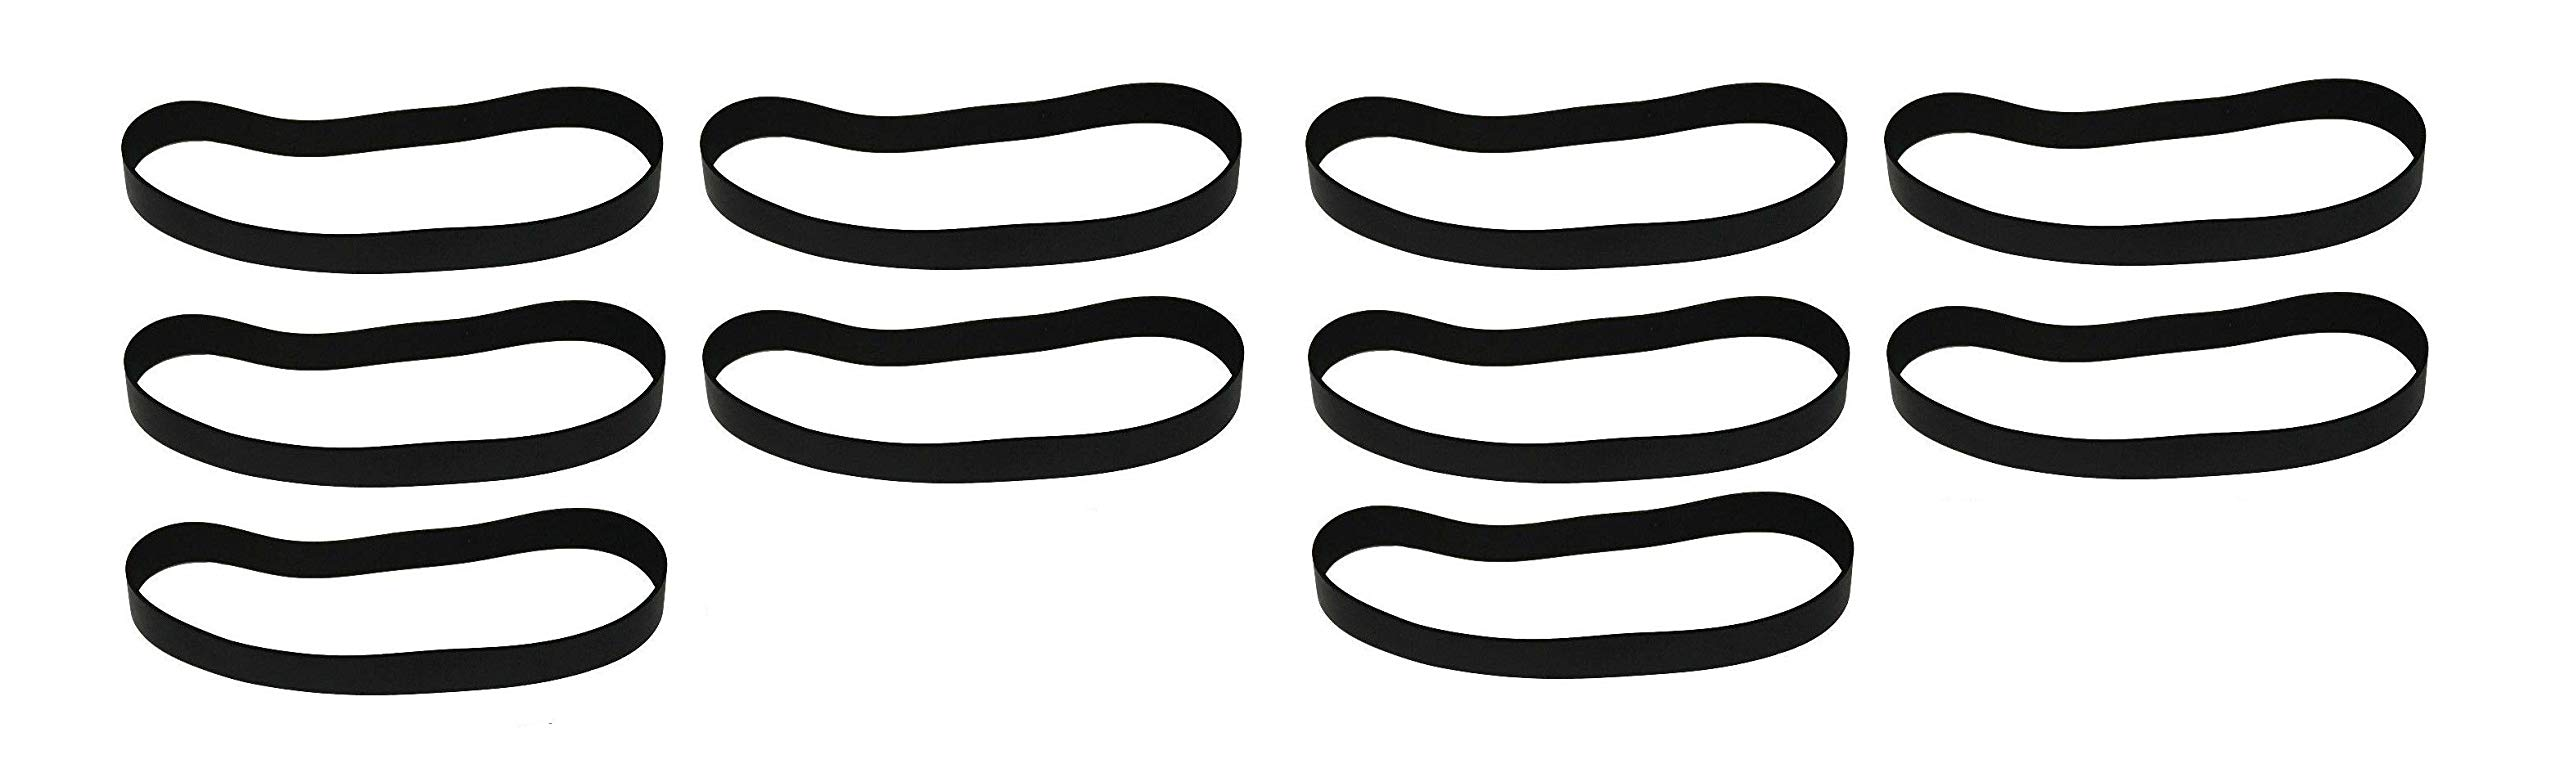 ZAITOE 10 Pack Belt Replacement For Hoover Windtunnel UH72600 AH20065 UH70200 UH71214(10 Pack)